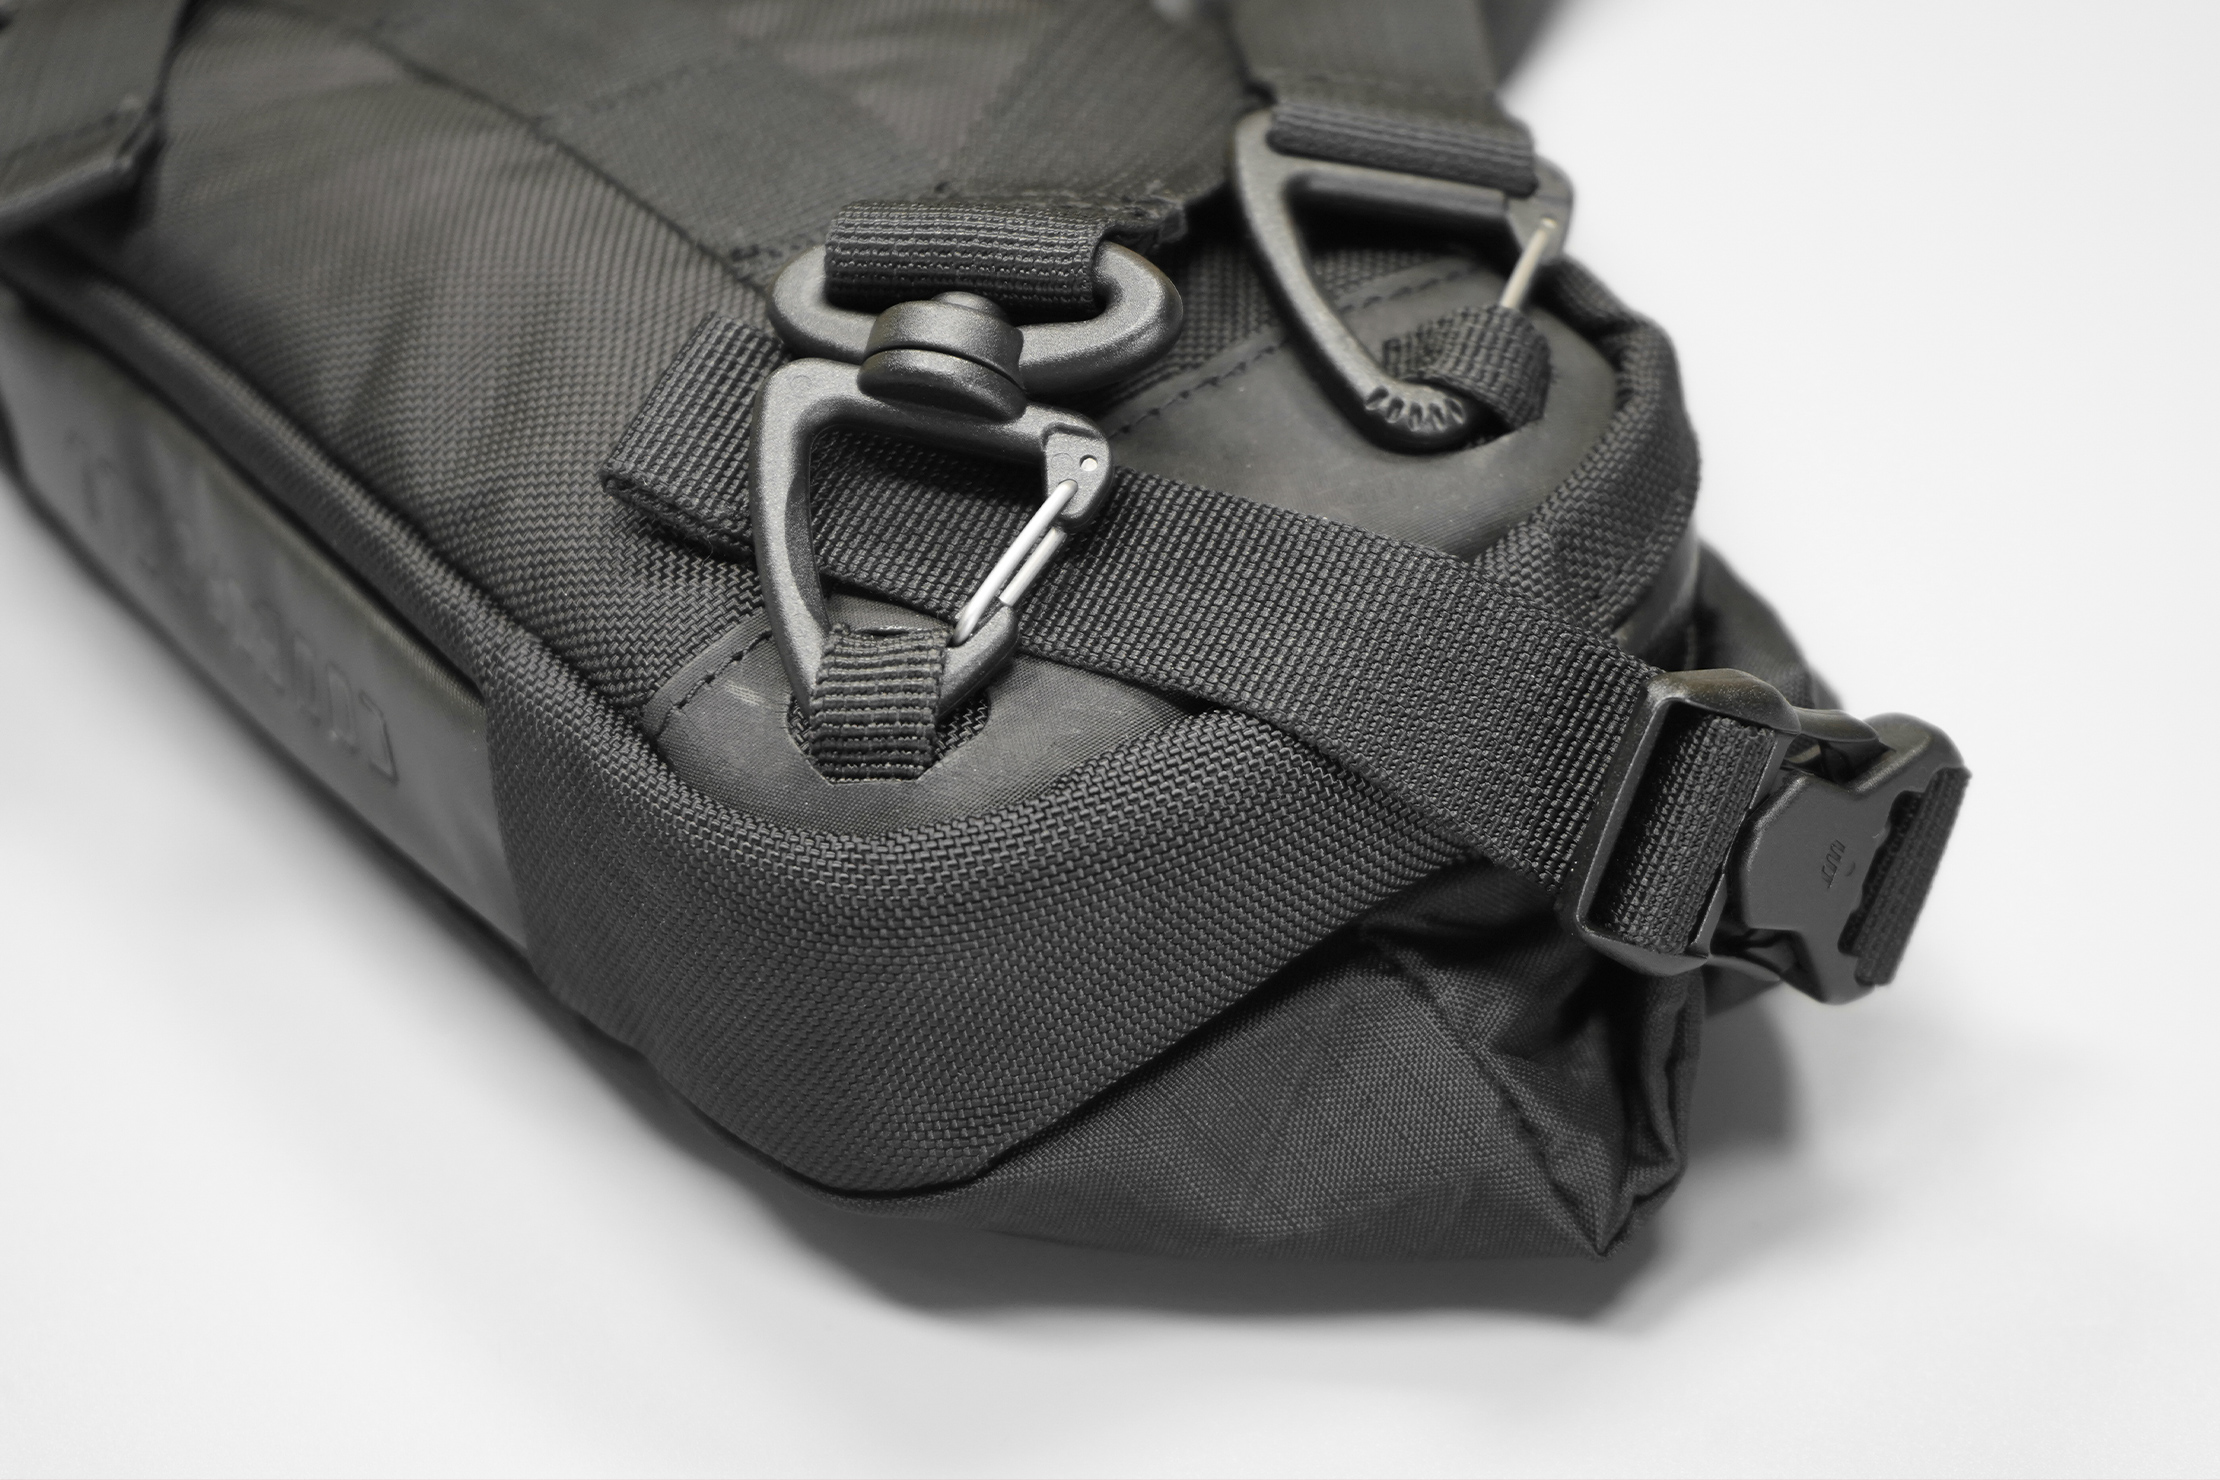 CODEOFBELL ANNEX CARRIER | Gatekeeper clips, side compression straps, and nylon webbing—all excellent quality of life features